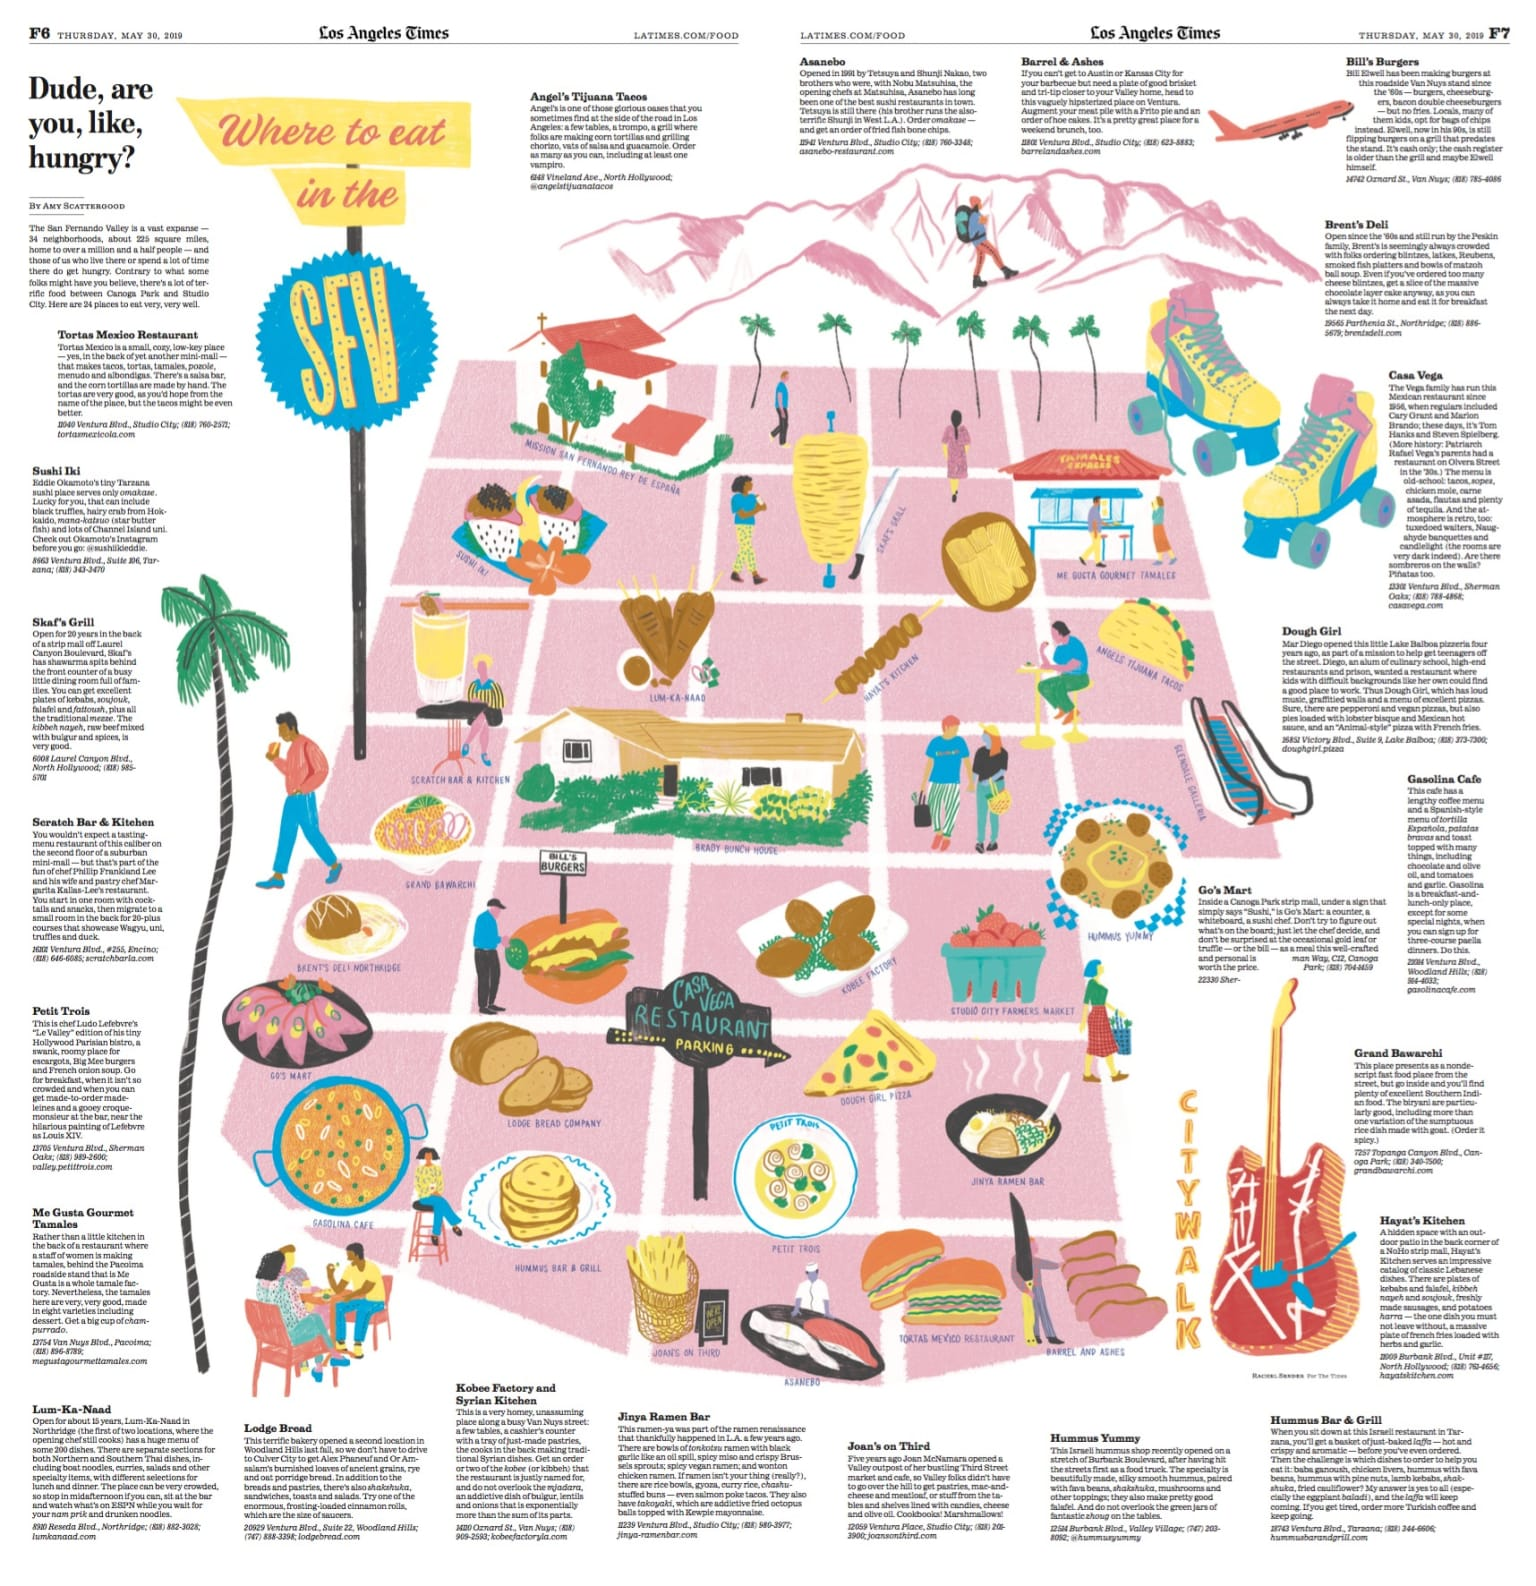 Illustrated food map for LA Times